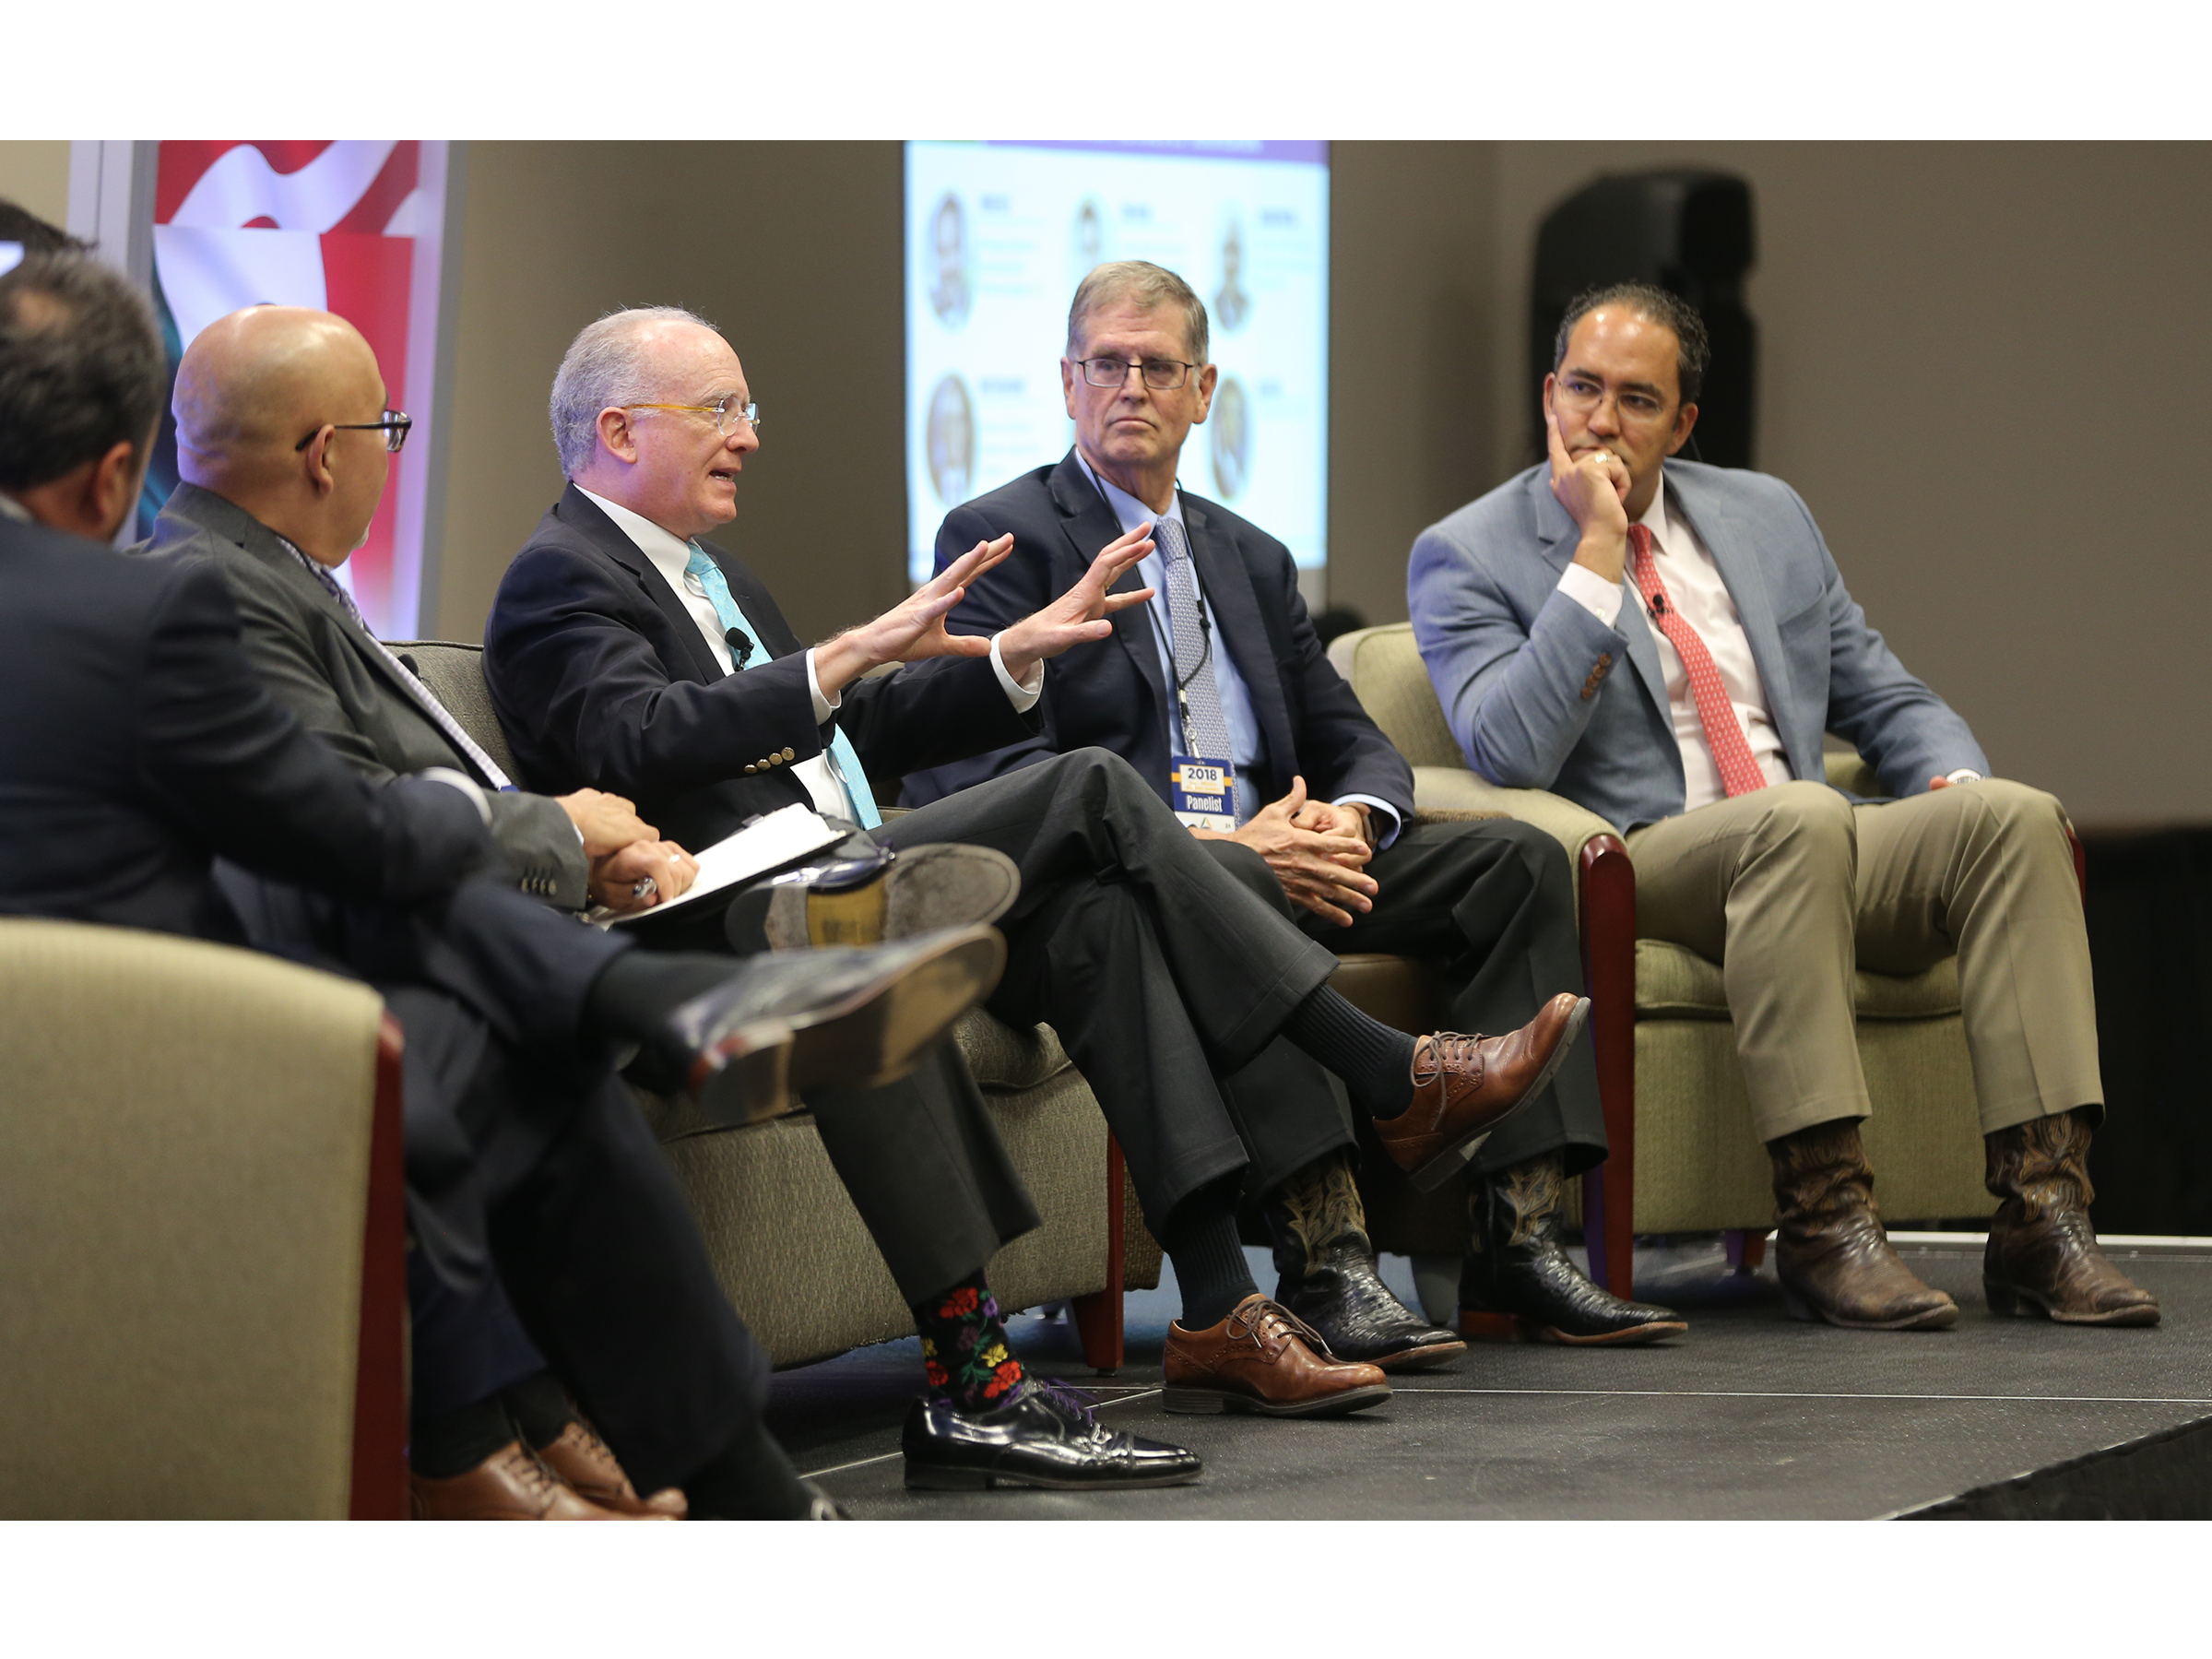 Matthew Rooney discusses NAFTA at the U.S.-Mexico Border Summit Wednesday.